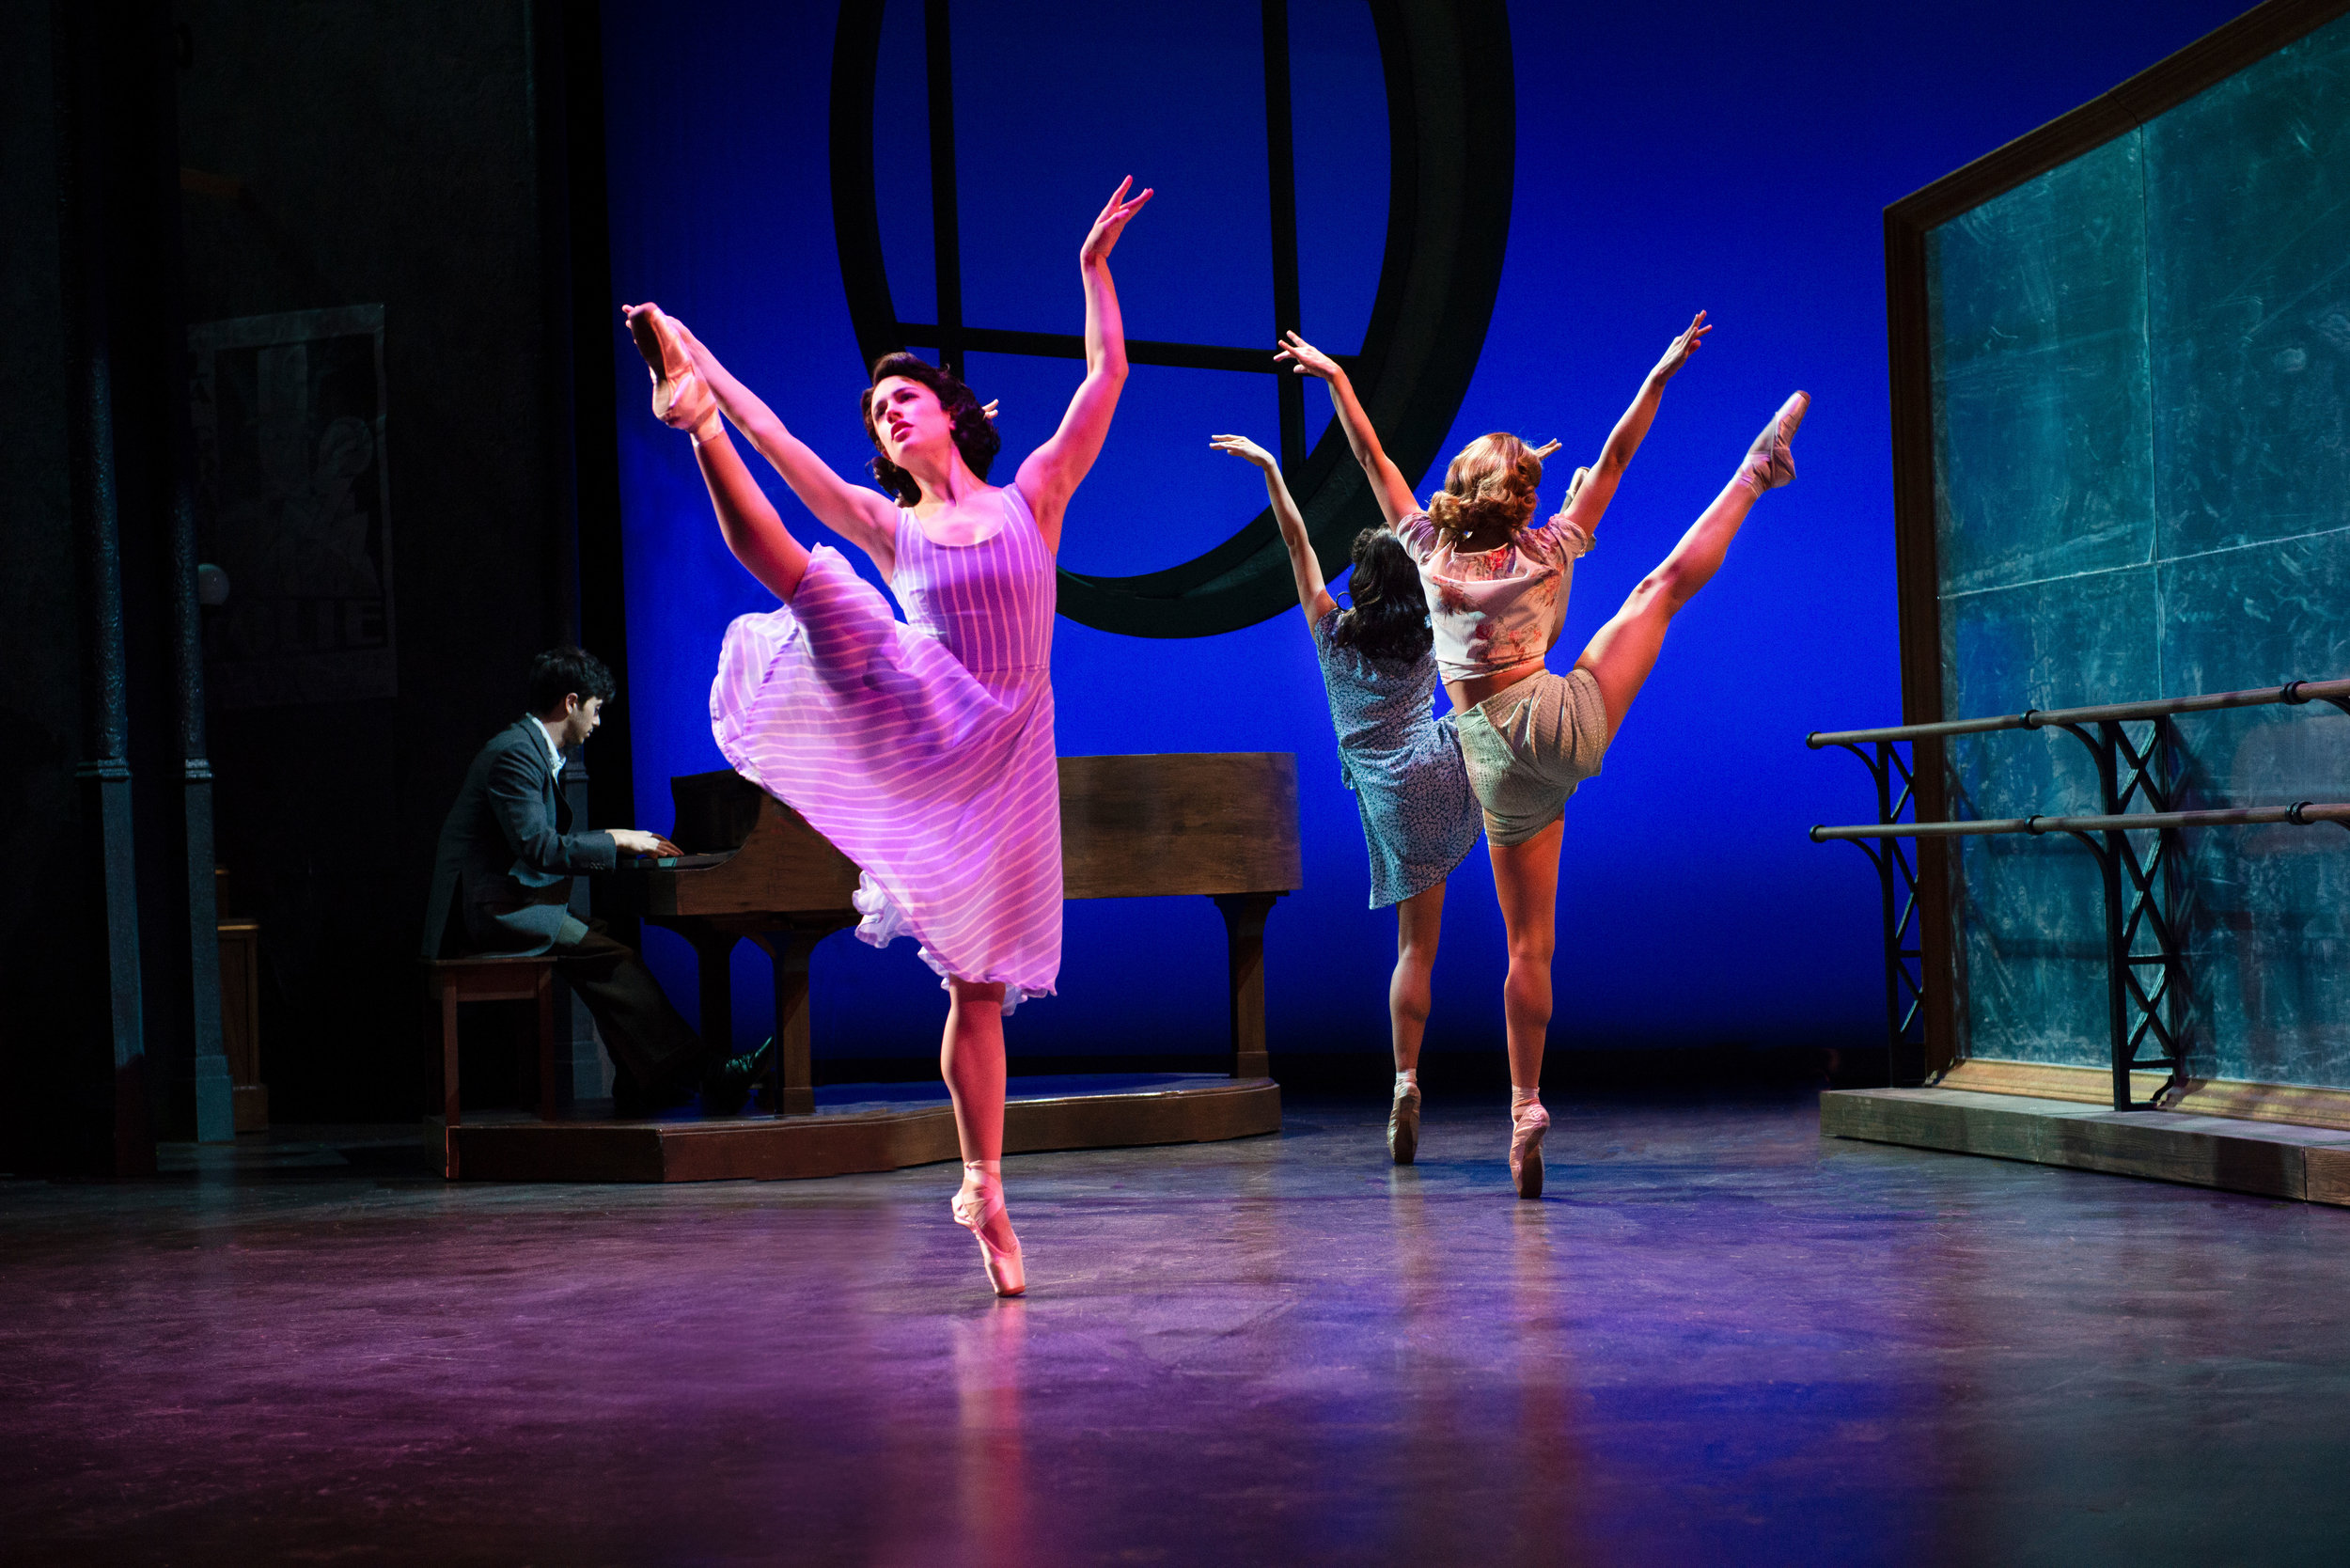 Jeremy Greenbaum, Julie Eicher, Akina Kitazawa, and Hannah Jennens in the 2018 production of An American in Paris. Photo by Gary Ng.